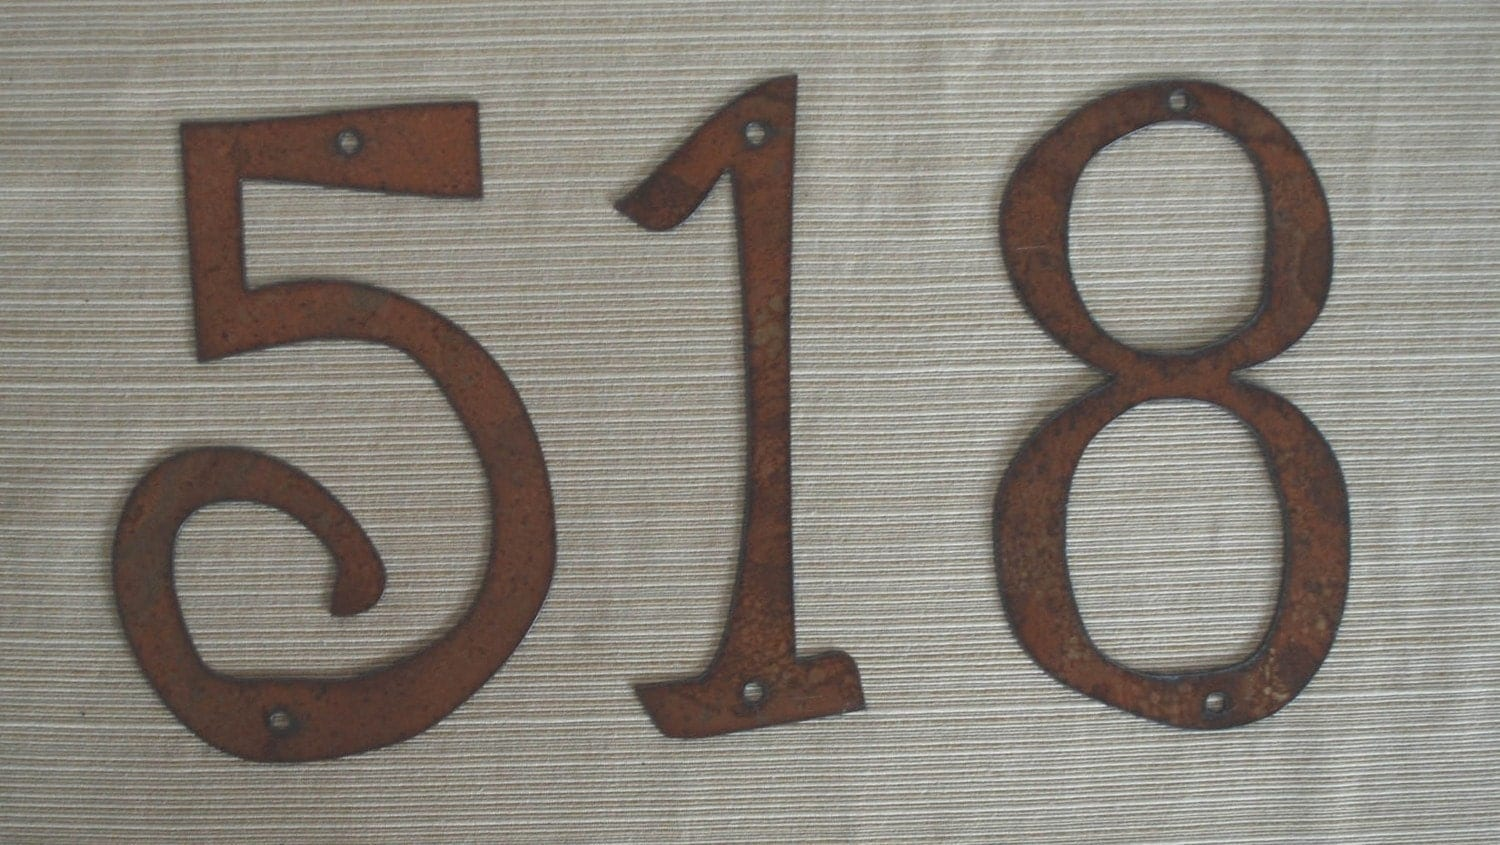 Modern Metal Letters Pleasing Individual House Numbers Rustic Metal 4 Inch To 8 Inch Design Inspiration